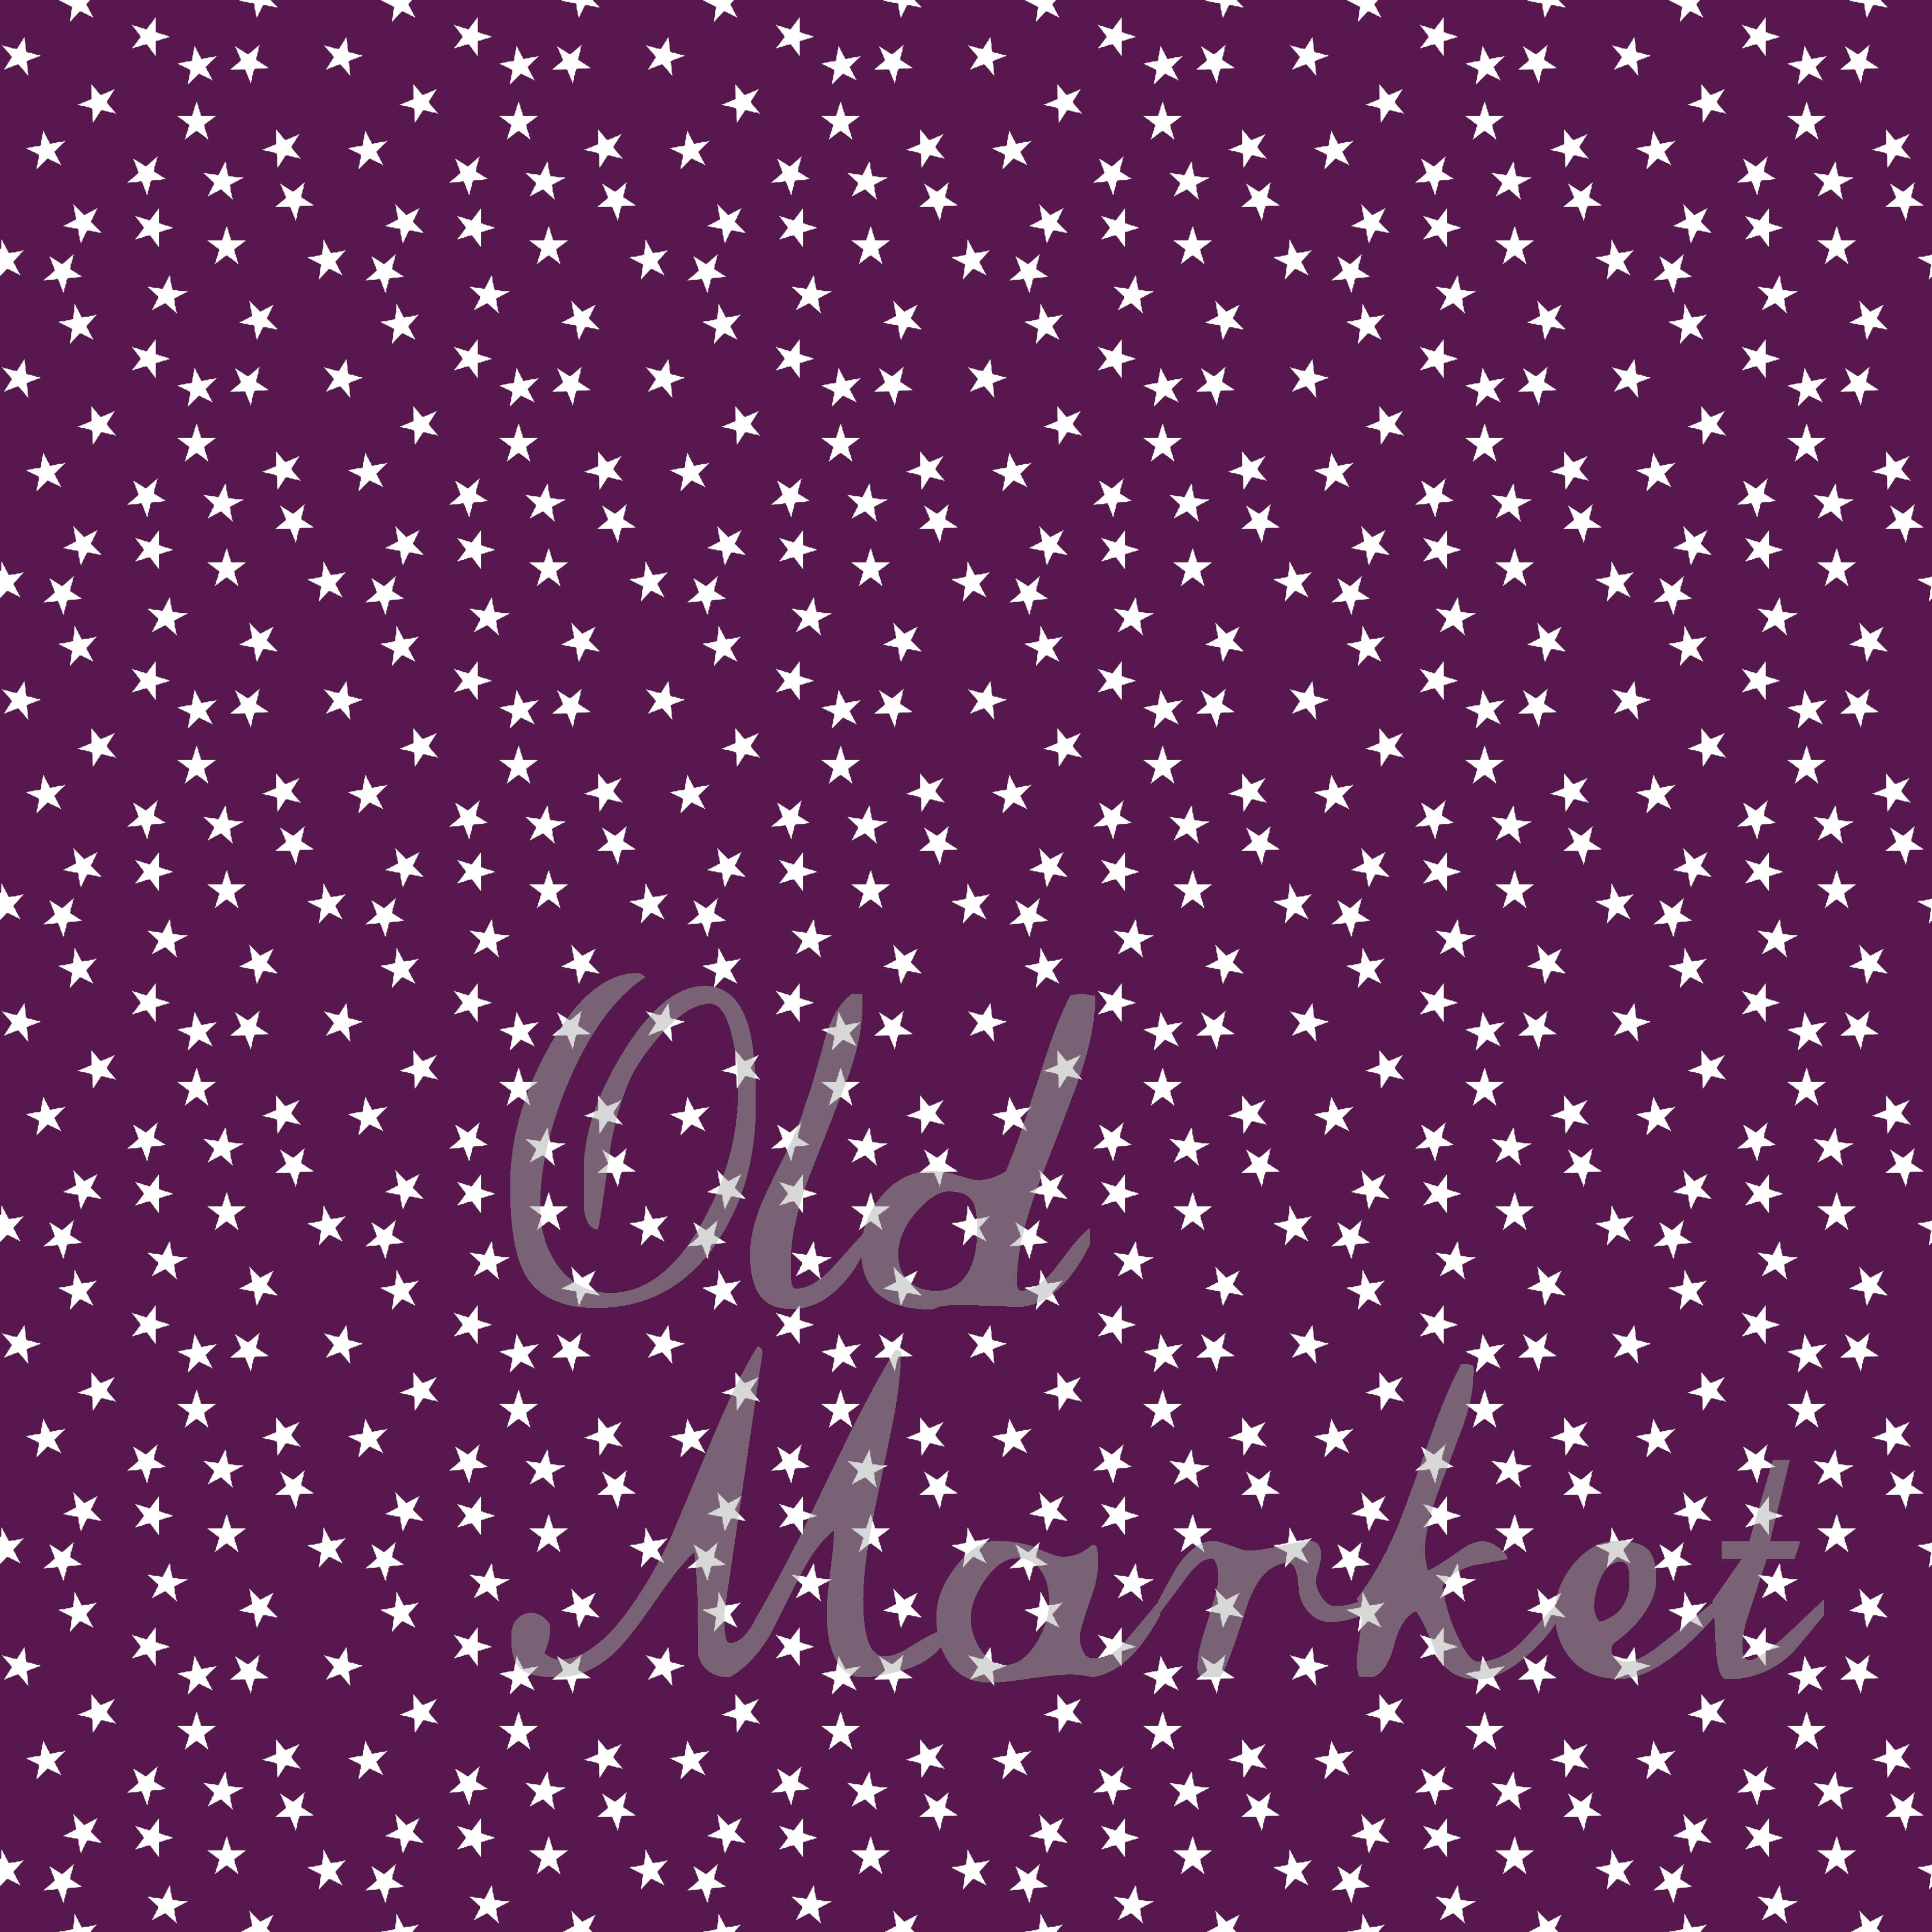 Dark Purple Patterns Digital Paper Graphic Backgrounds By oldmarketdesigns - Image 2